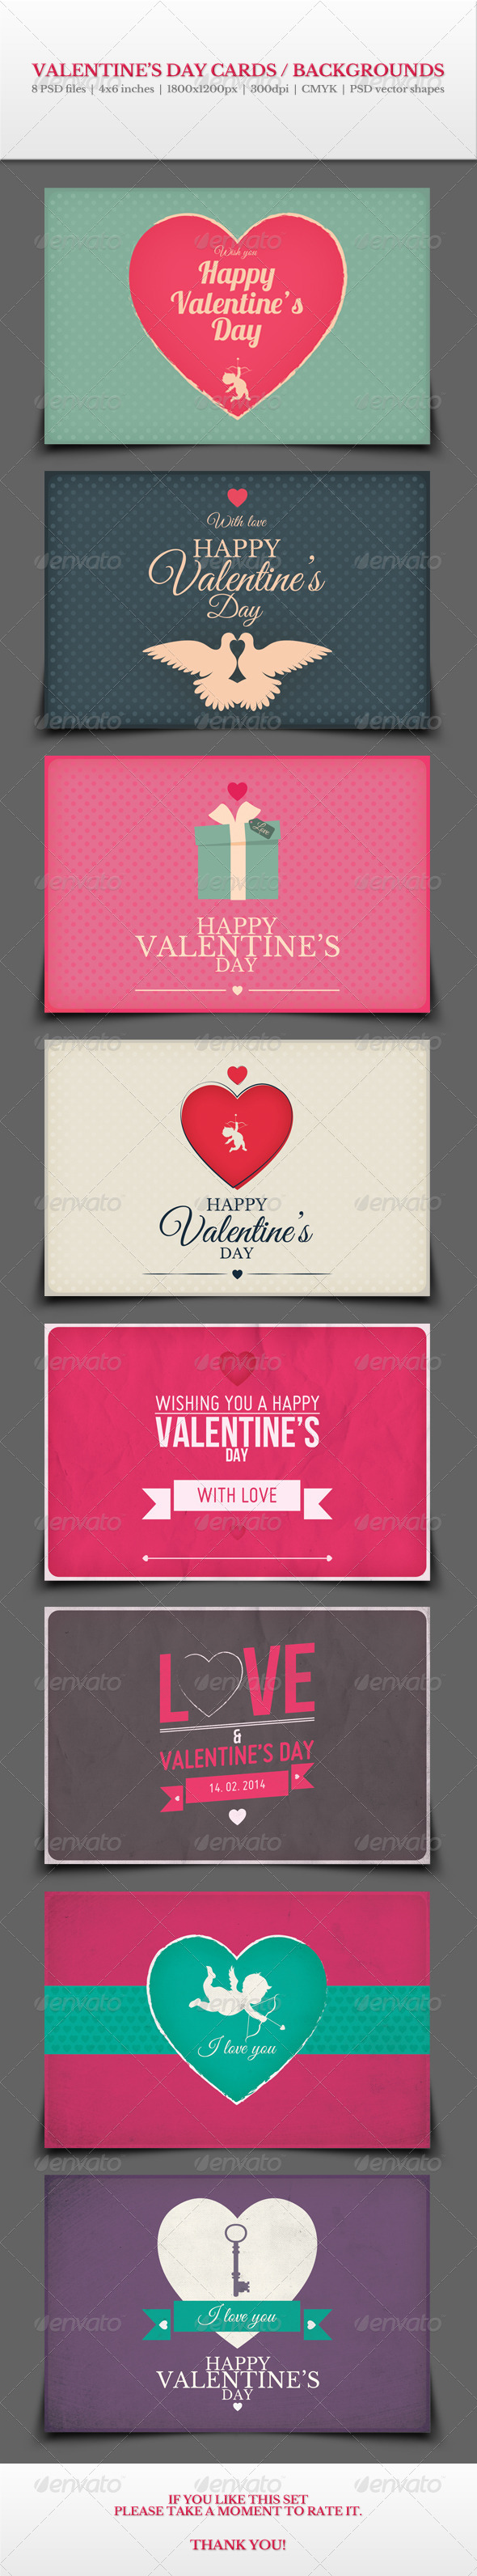 GraphicRiver Valentine s Day Cards Backgrounds Vol.2 6521381